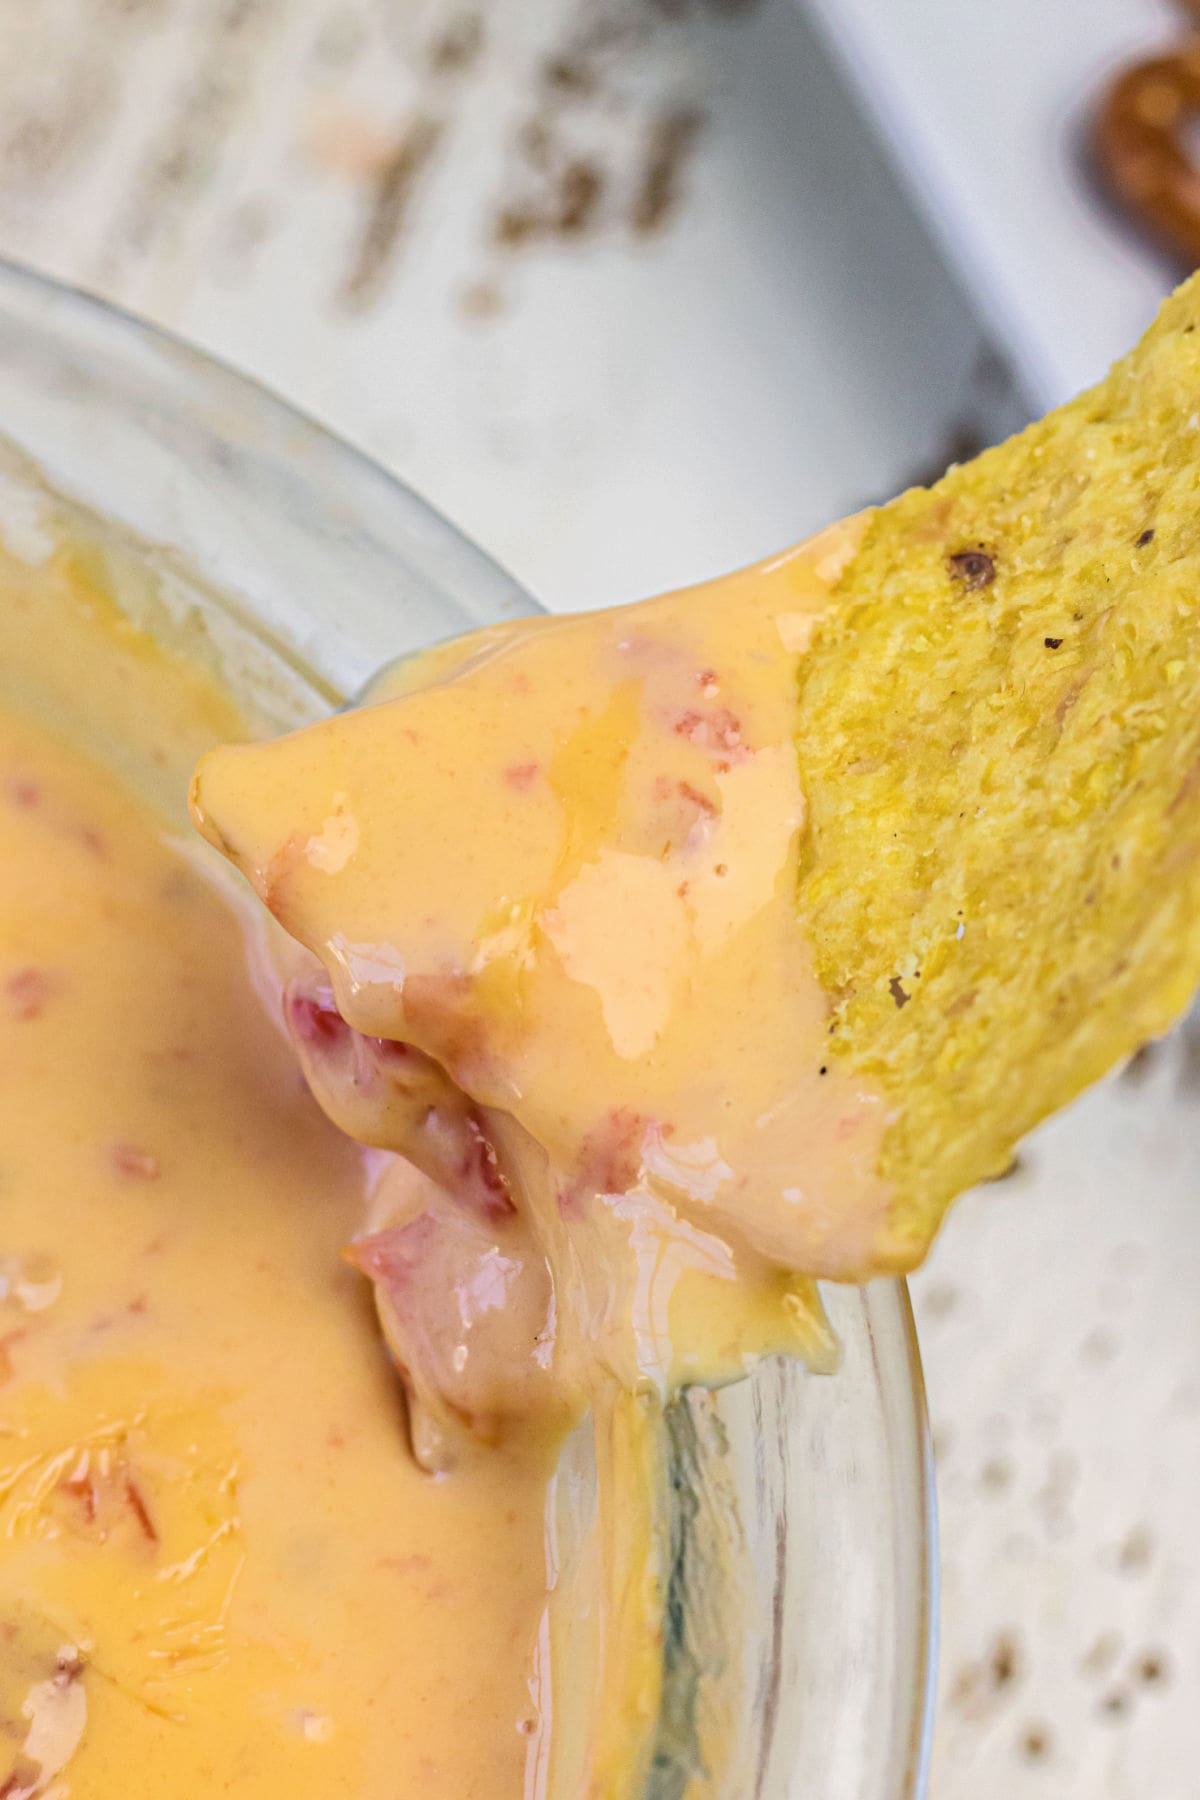 A tortilla chip being dipped into the queso.